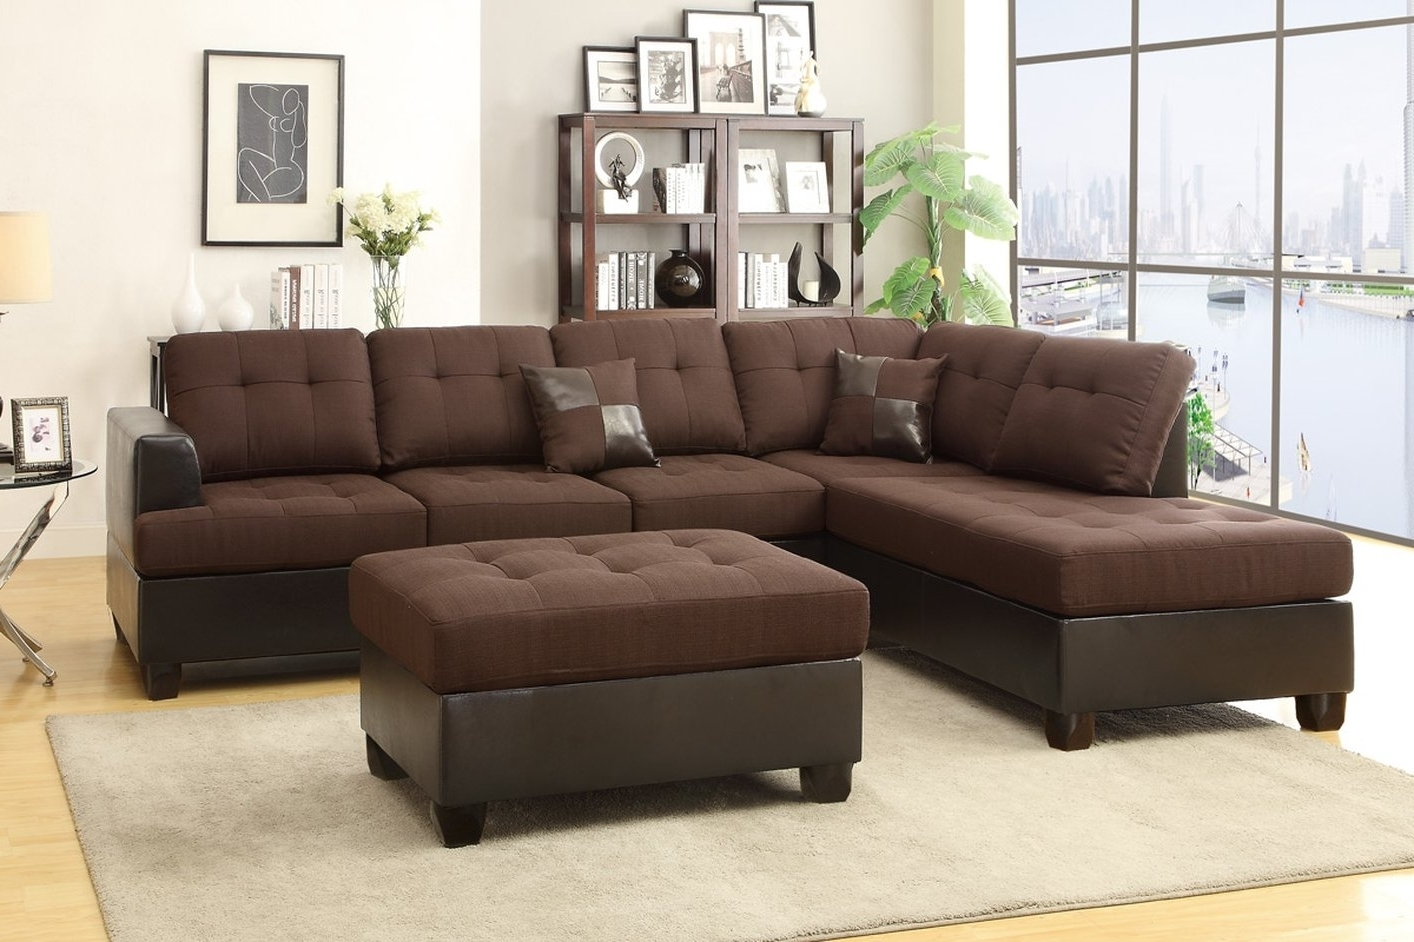 Most Recently Released Incredible Chocolate Polyfiber Leather Room To Go Sofas Polyfiber Inside Rooms To Go Sectional Sofas (View 15 of 15)